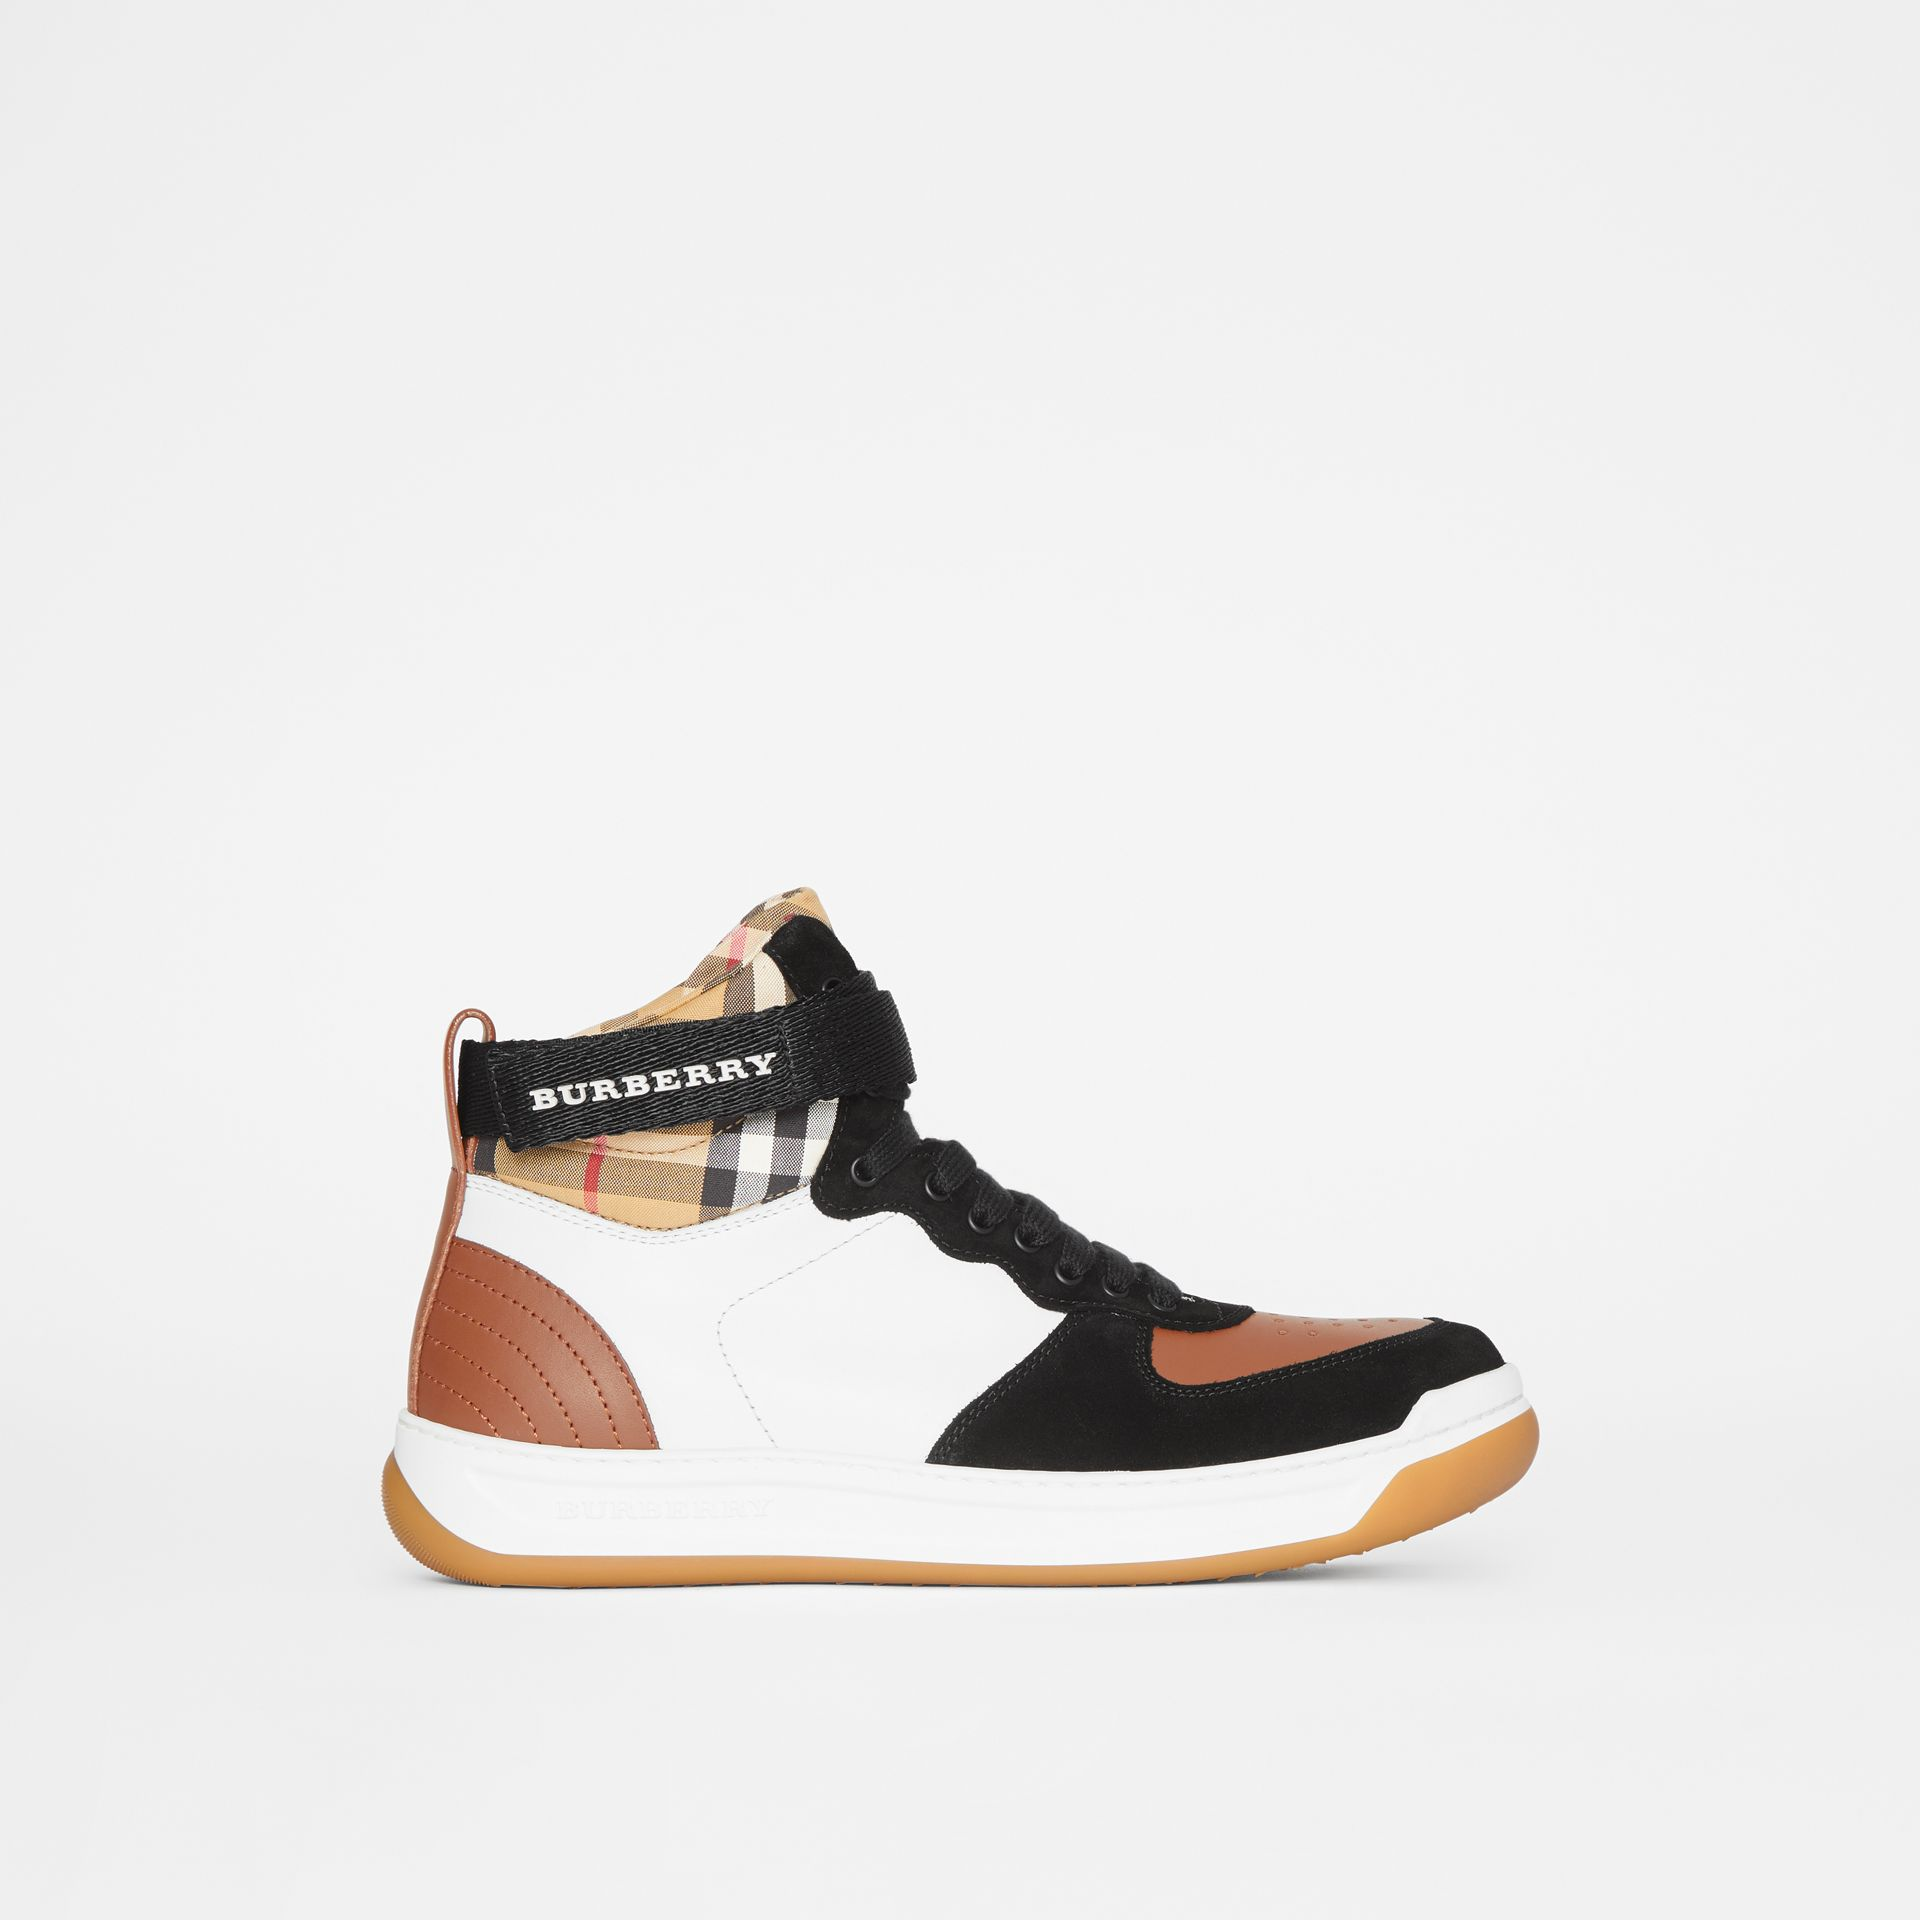 Leather and Suede High-top Sneakers in Camel - Women | Burberry United Kingdom - gallery image 5